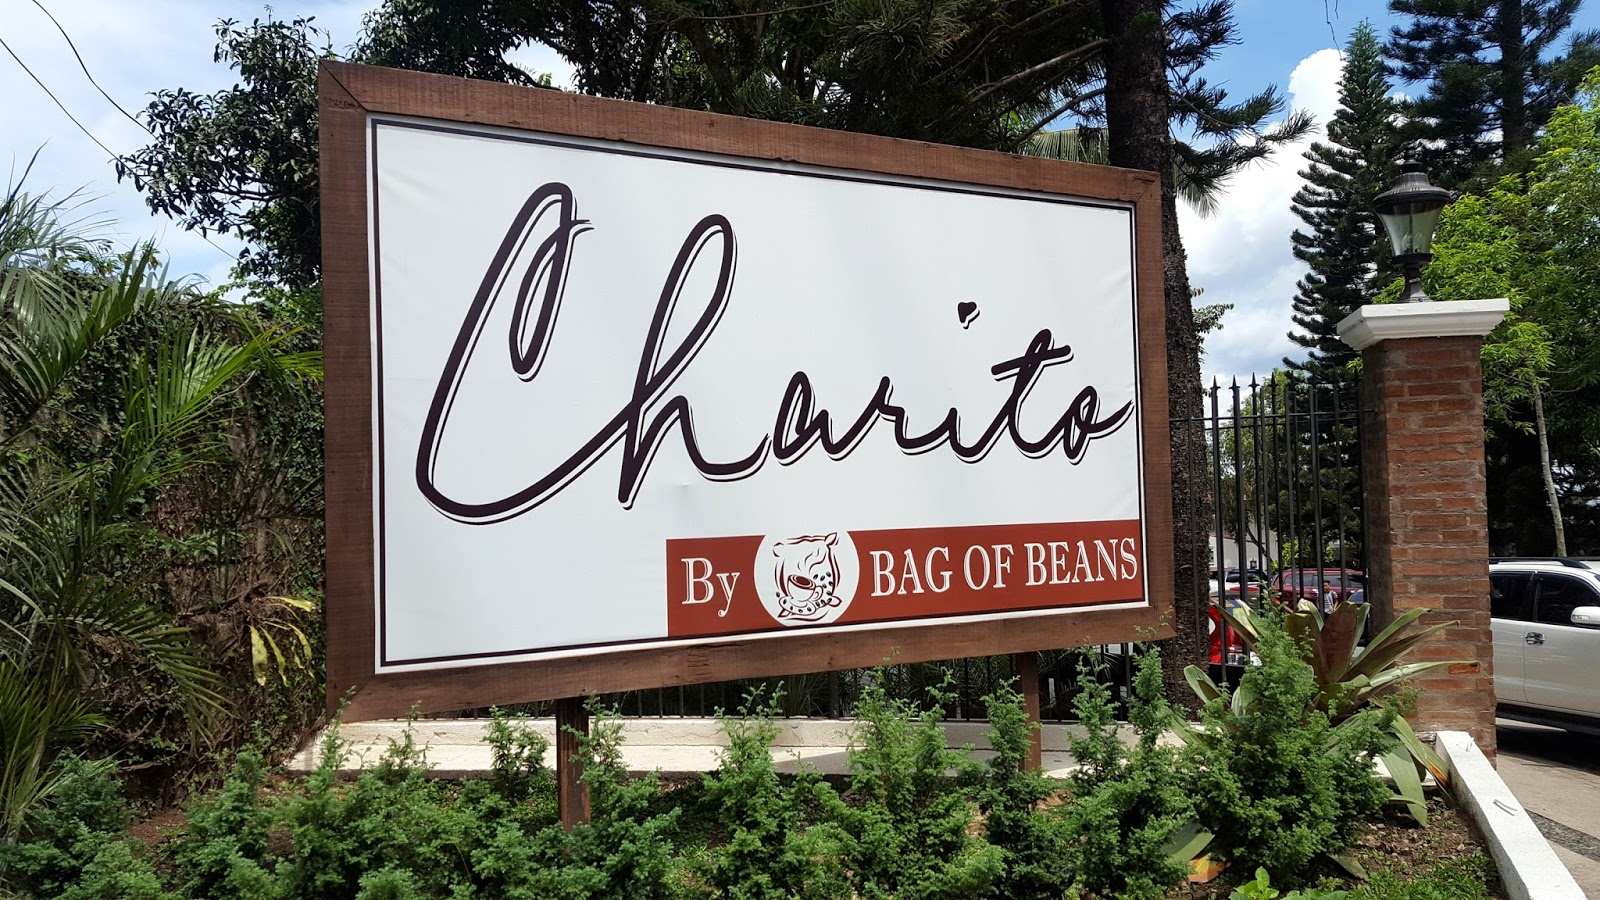 CHARITO BY BAG OF BEANS